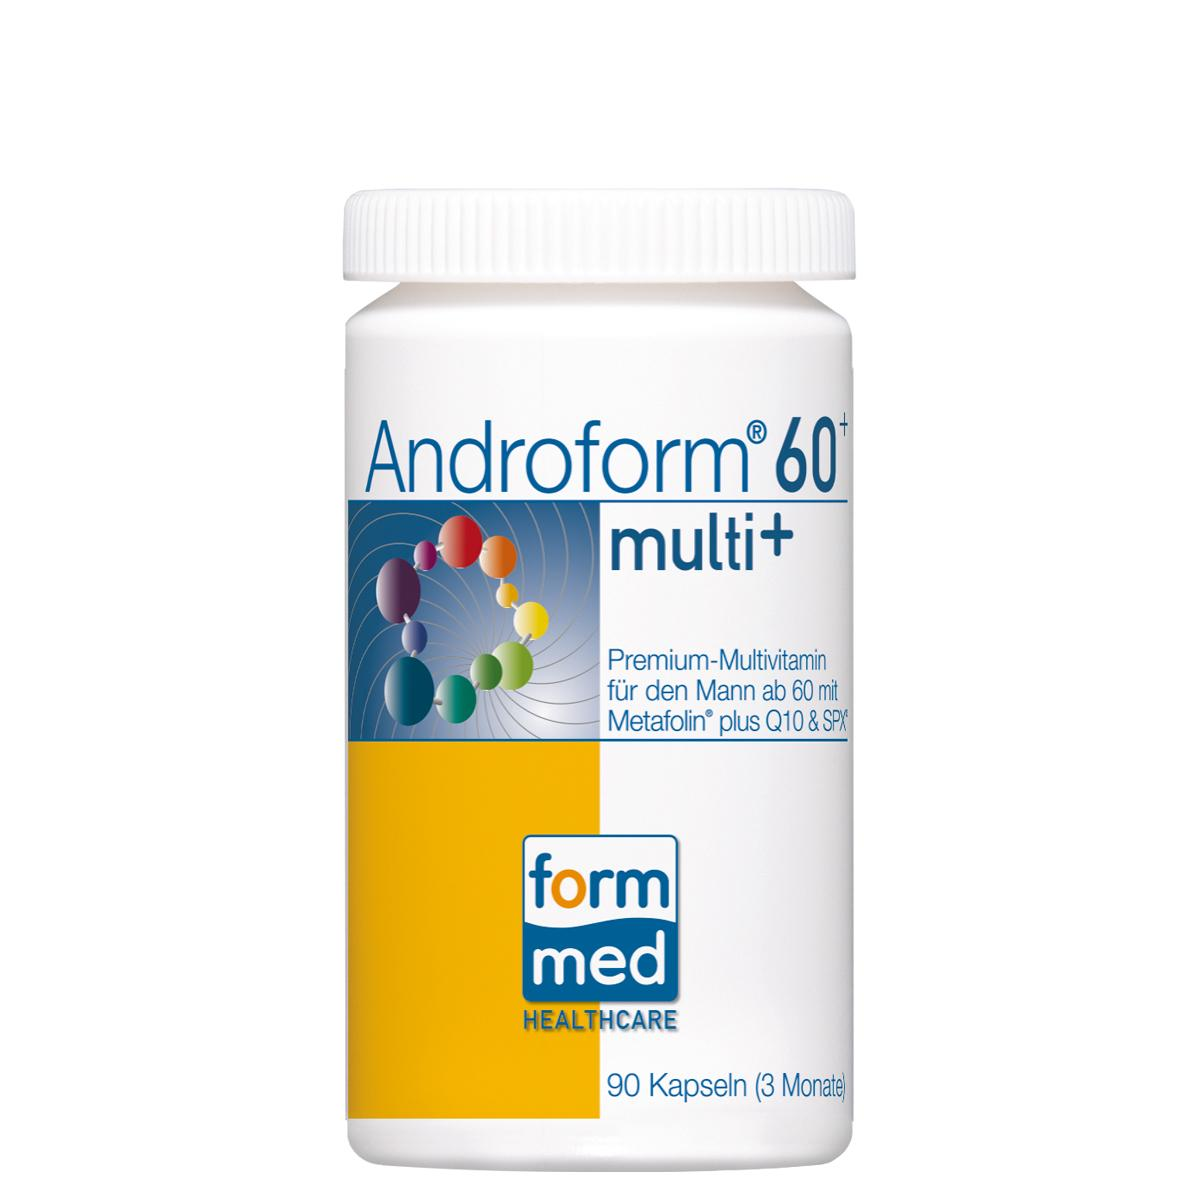 Androform® 60+ multi+